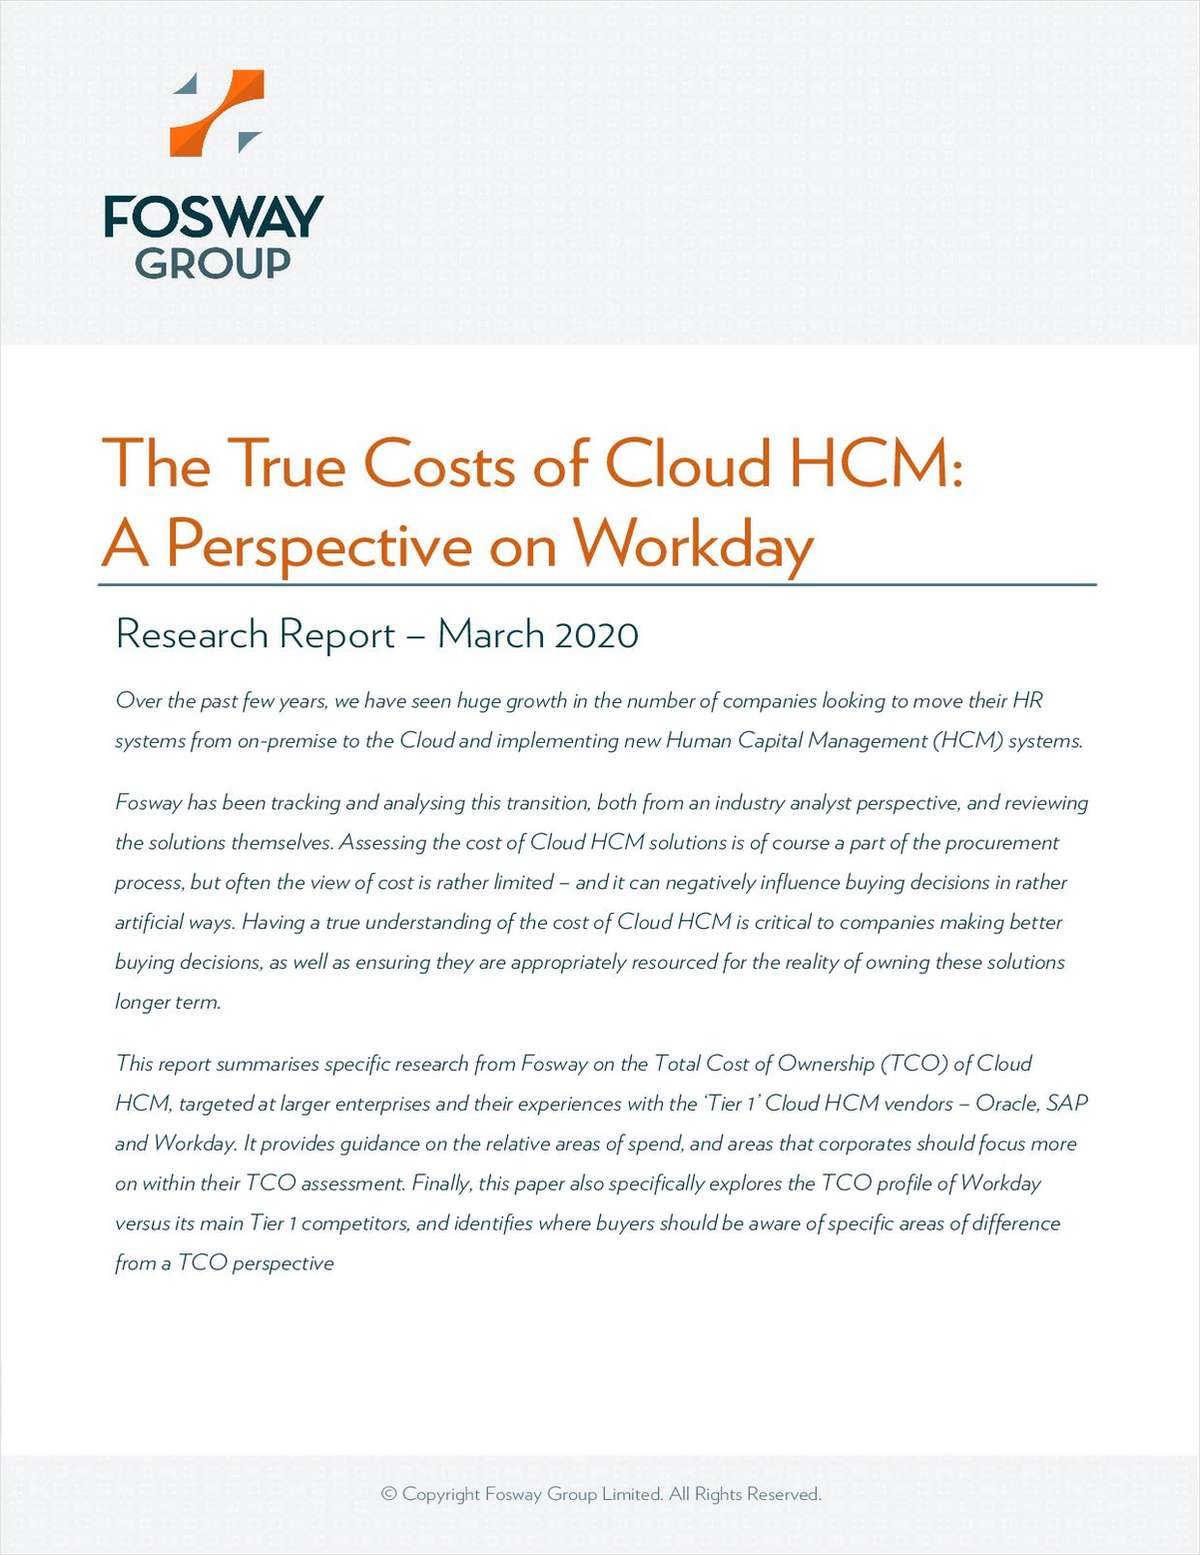 The True Costs of Cloud HCM - A Perspective on Workday